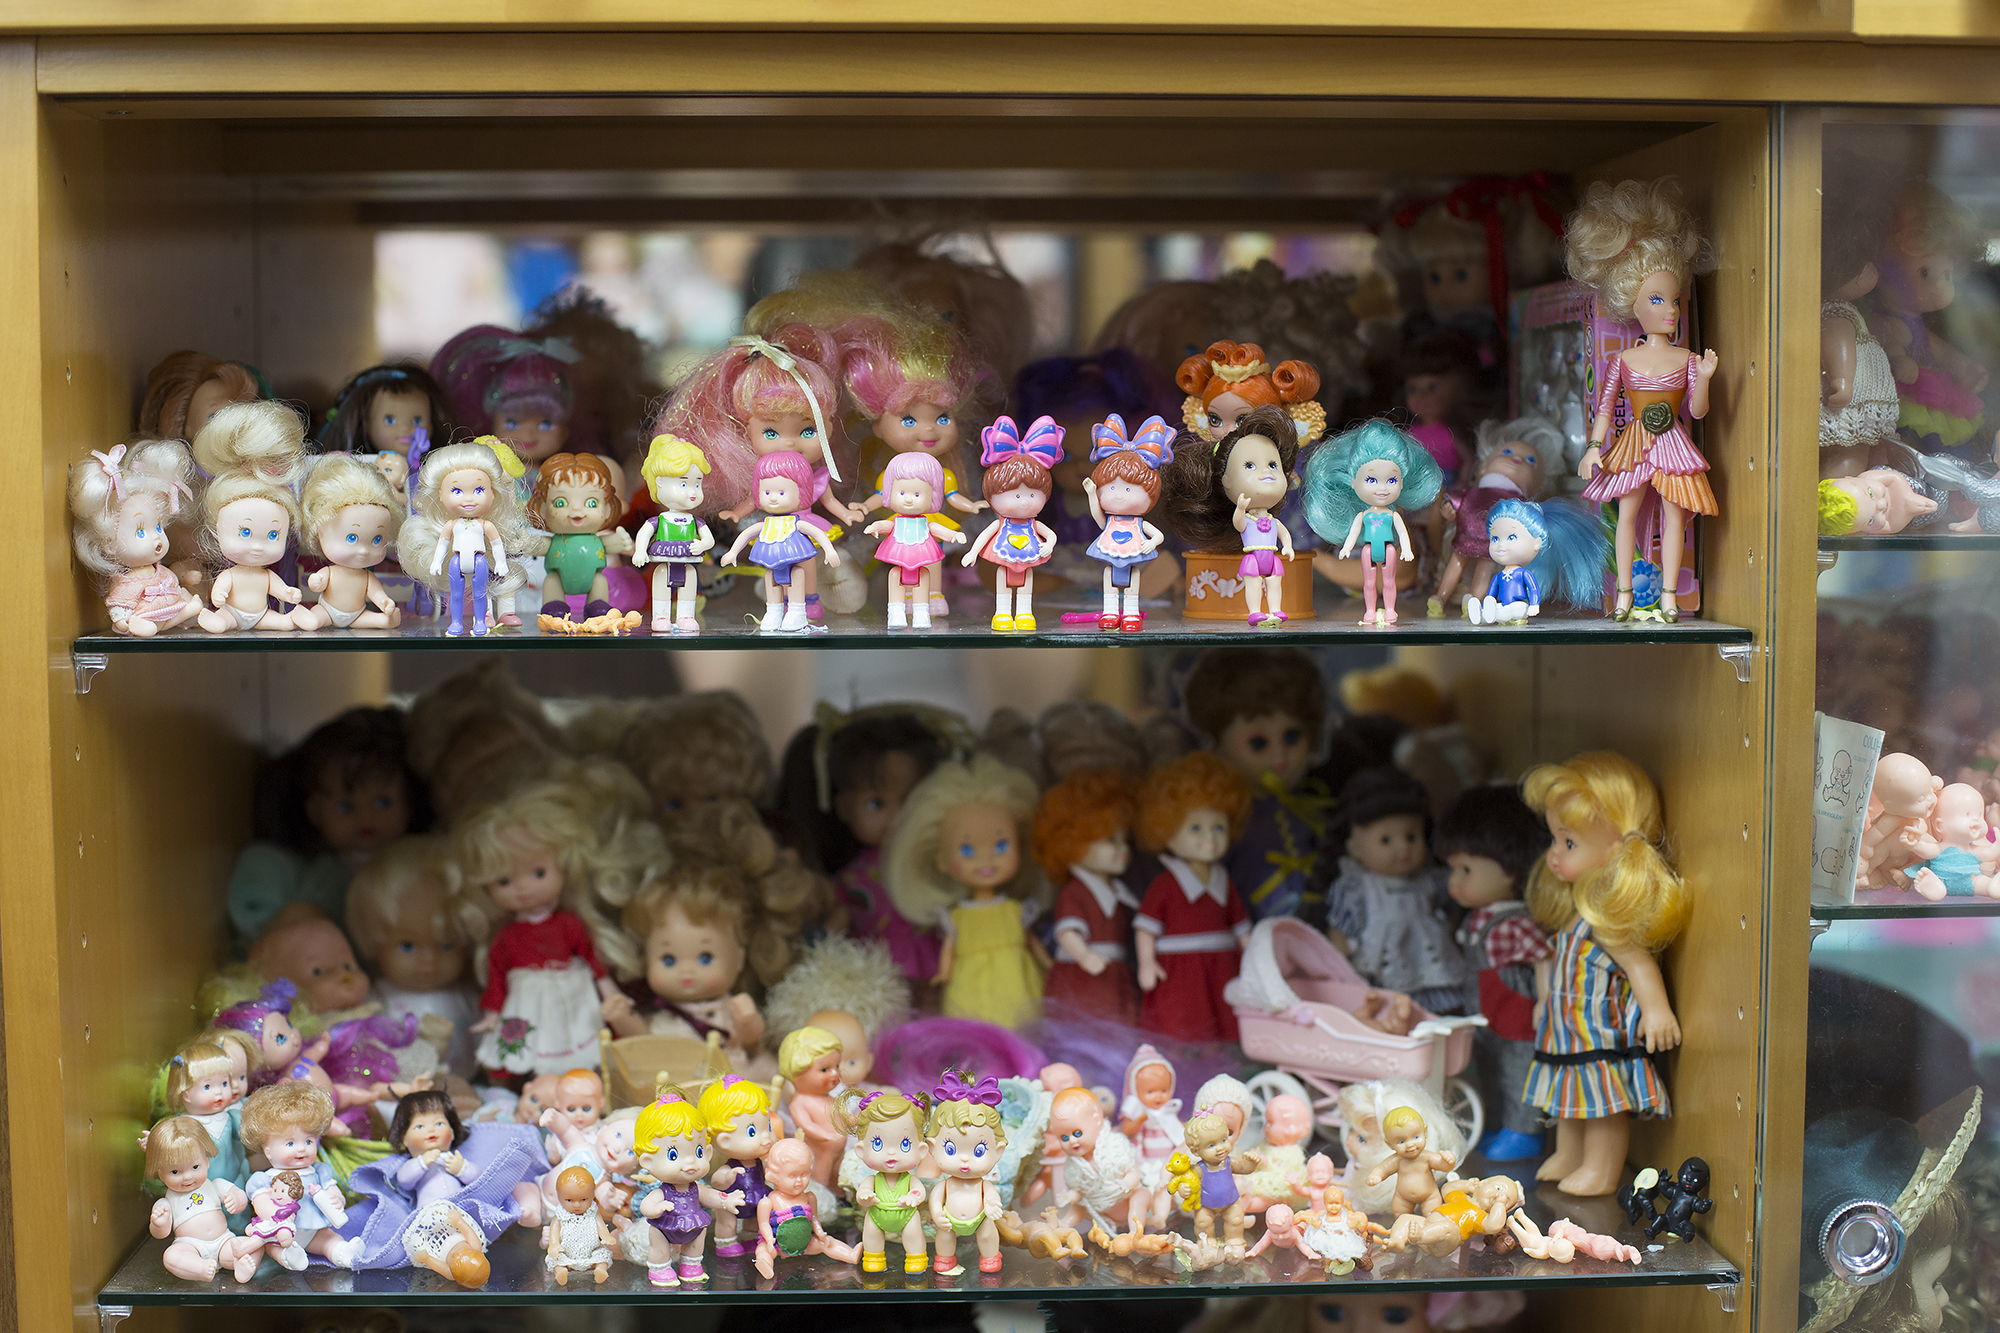 An assortment of little dolls. You can see at the bottom the two with curly red hair are Annie dolls.